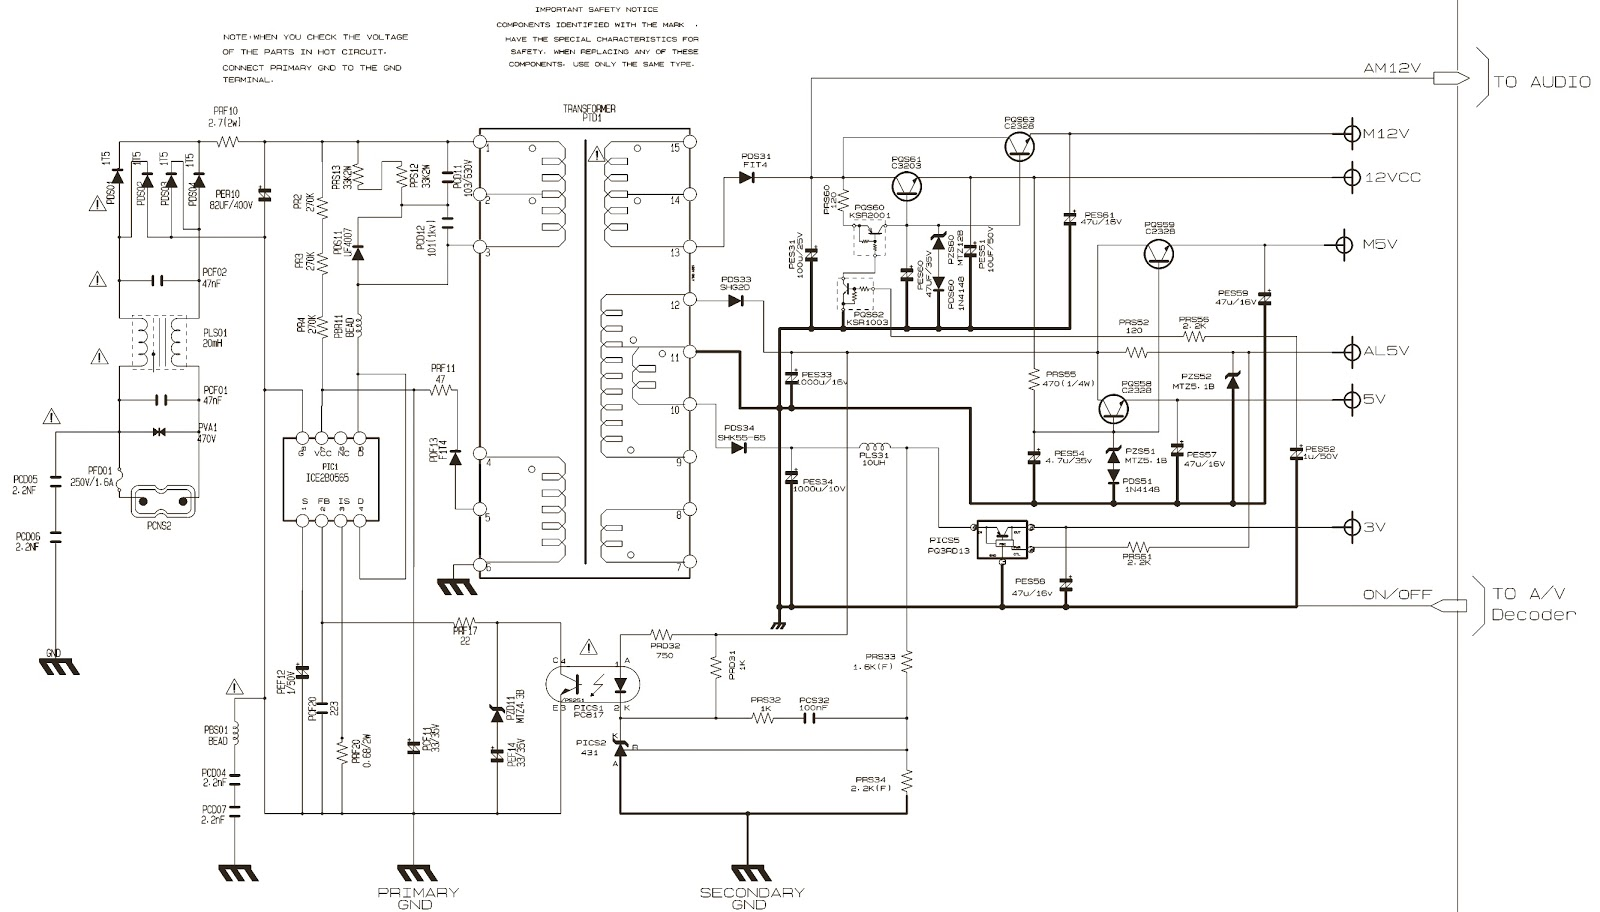 SAMSUNG DVDP244 – EXPLODED VIEW – SMPS CIRCUIT DIAGRAM